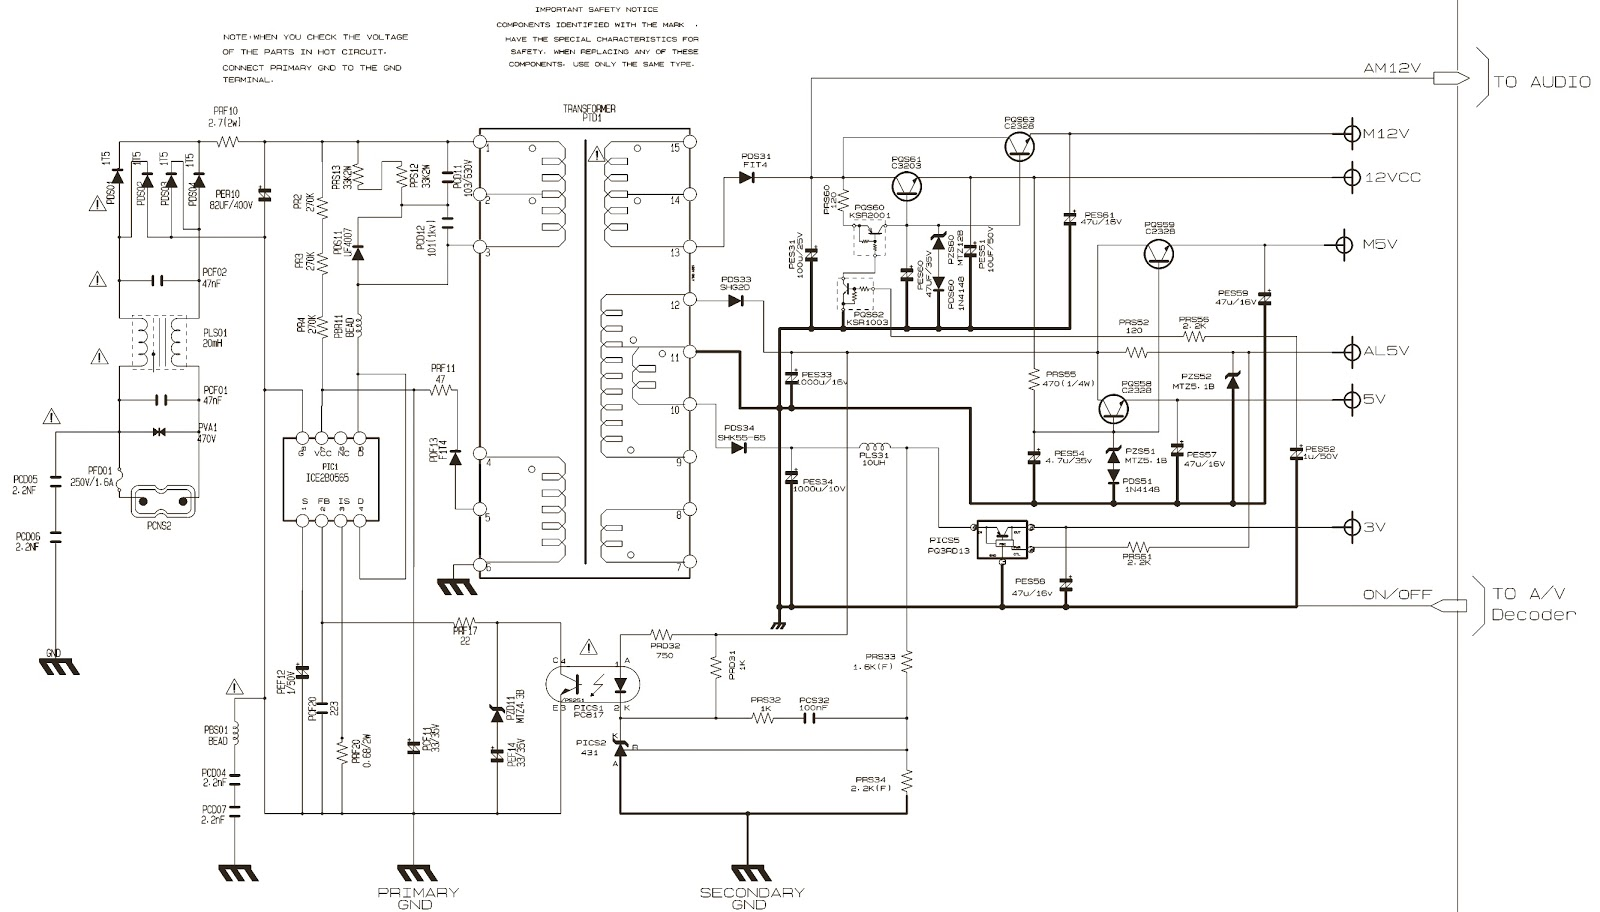 SAMSUNG DVDP244 – EXPLODED VIEW – SMPS CIRCUIT DIAGRAM